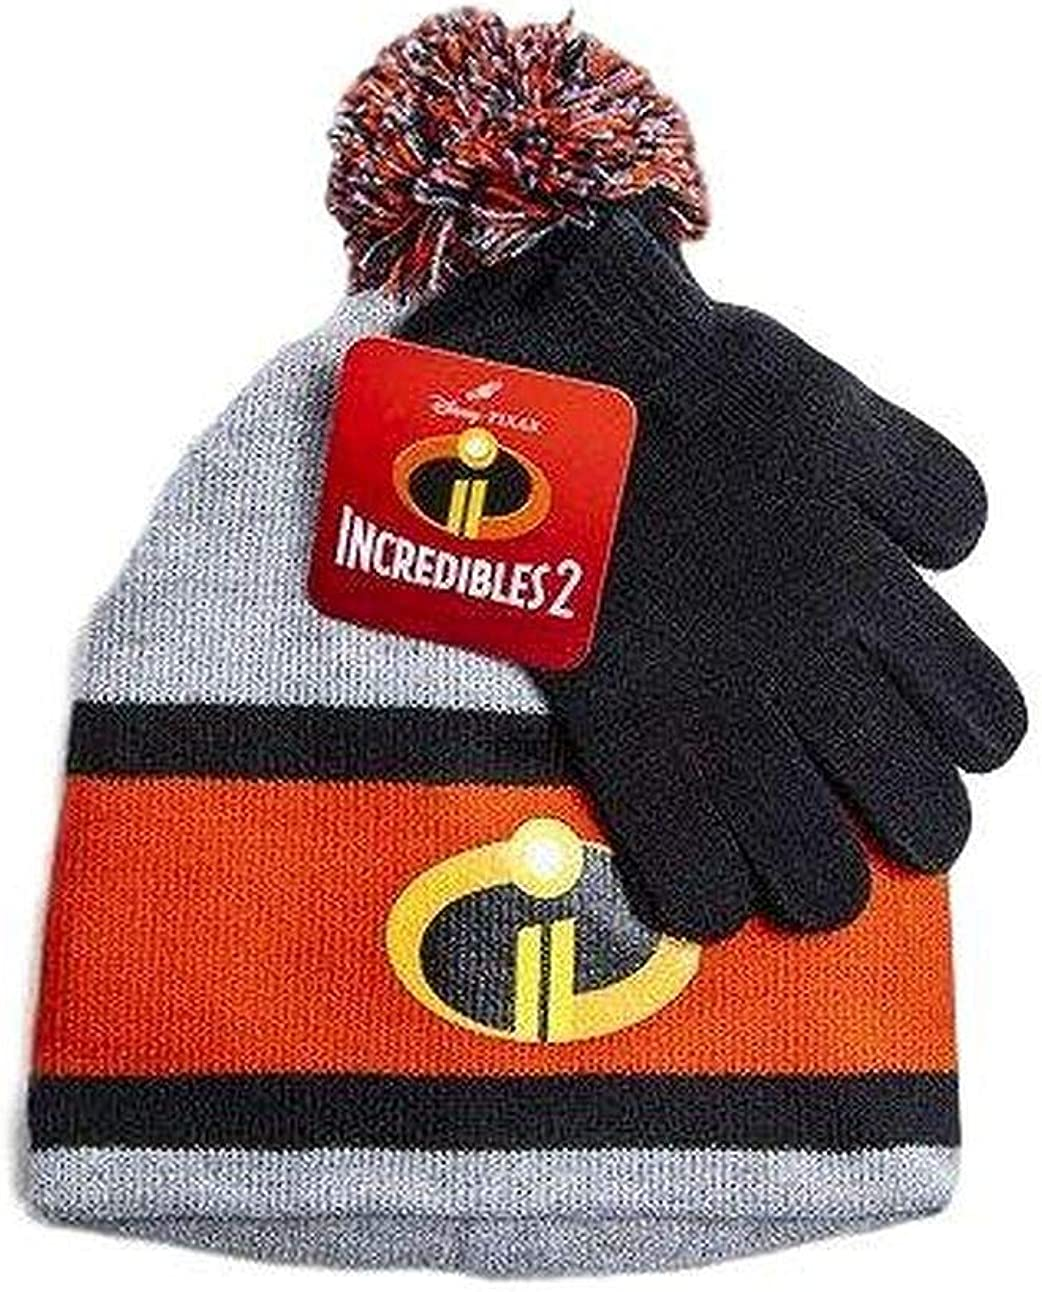 Incredibles 2 Disney Boys Beanie Winter Hat and Glove Set